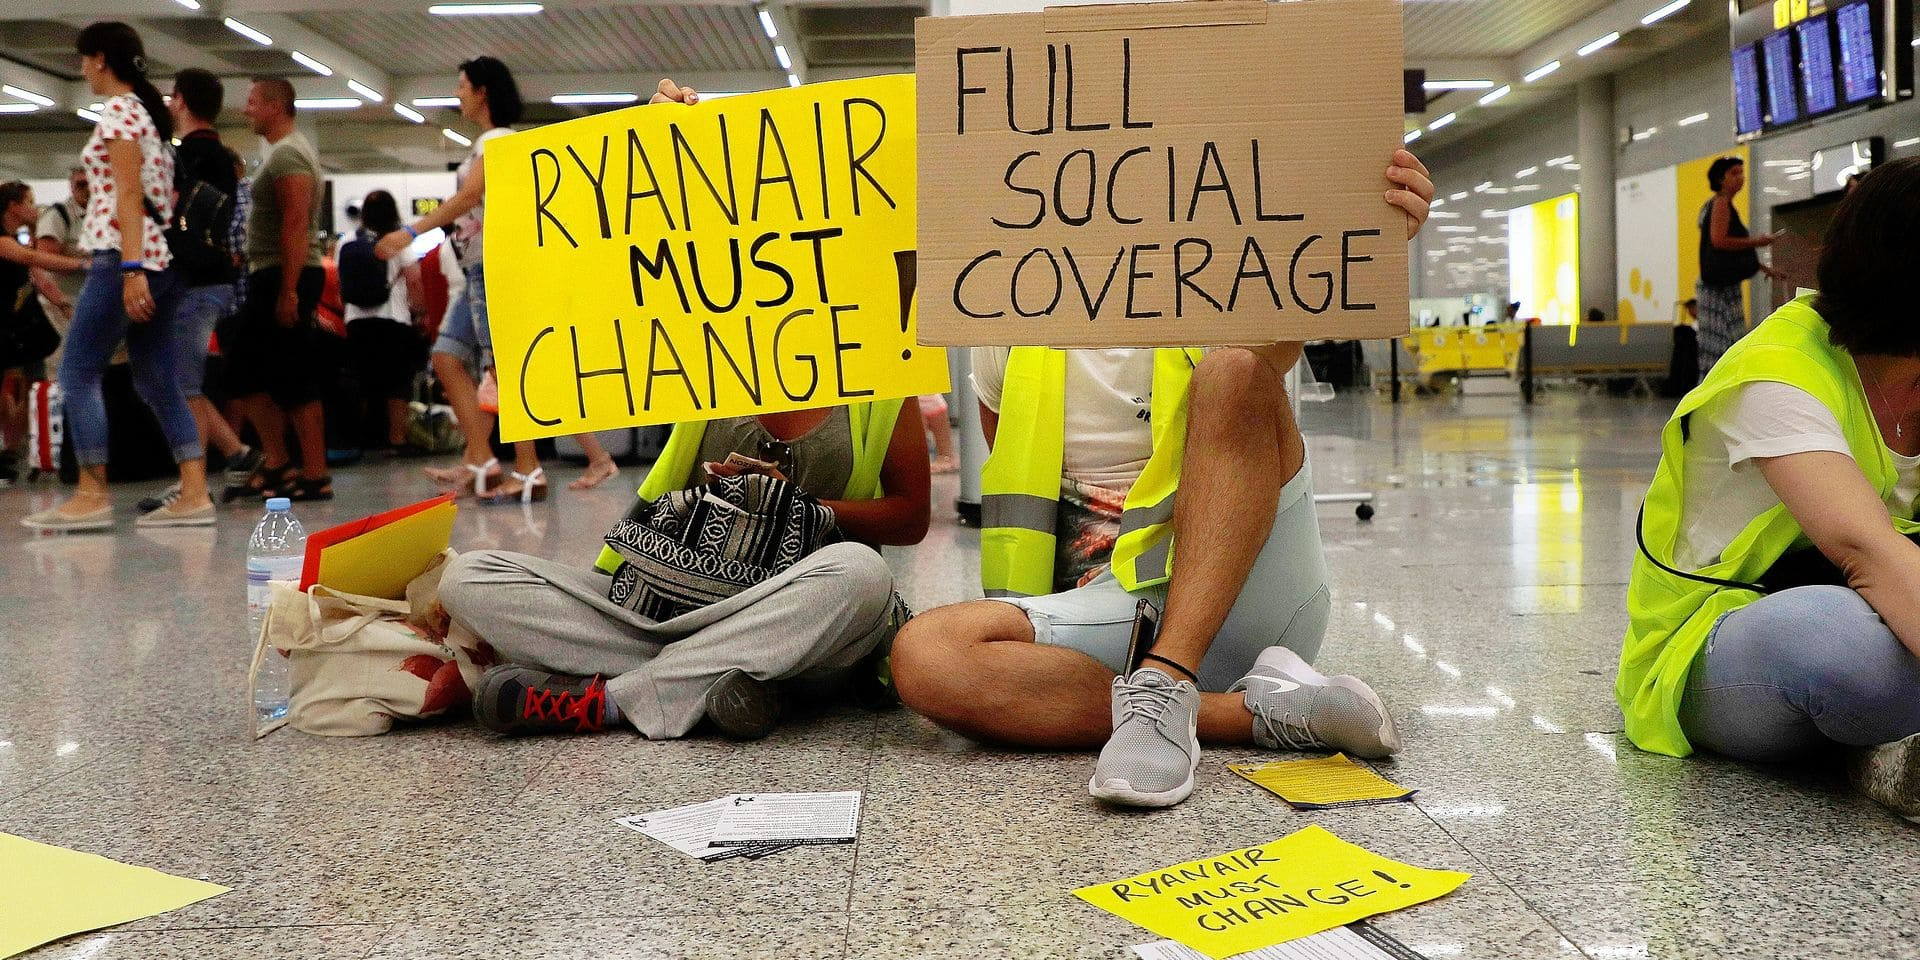 25 July 2018, Mallorcam Spain: cabin crew of the airline Ryanair demonstrates at Palma de Mallorca airport with signs and demands more money and better conditions. The start of a two-day strike by cabin crew at the low-cost airline Ryanair has caused great displeasure among countless travellers in several European countries. The most cancellations occurred in Spain, where Ryanair cancelled 200 flights - just under a quarter of all connections. In Mallorca alone, 72 flights were cancelled on 25 July 2018 due to the strike, including ten of the forty connections to Germany, according to an airport spokesman. Photo: Clara Margais/dpa Reporters / DPA